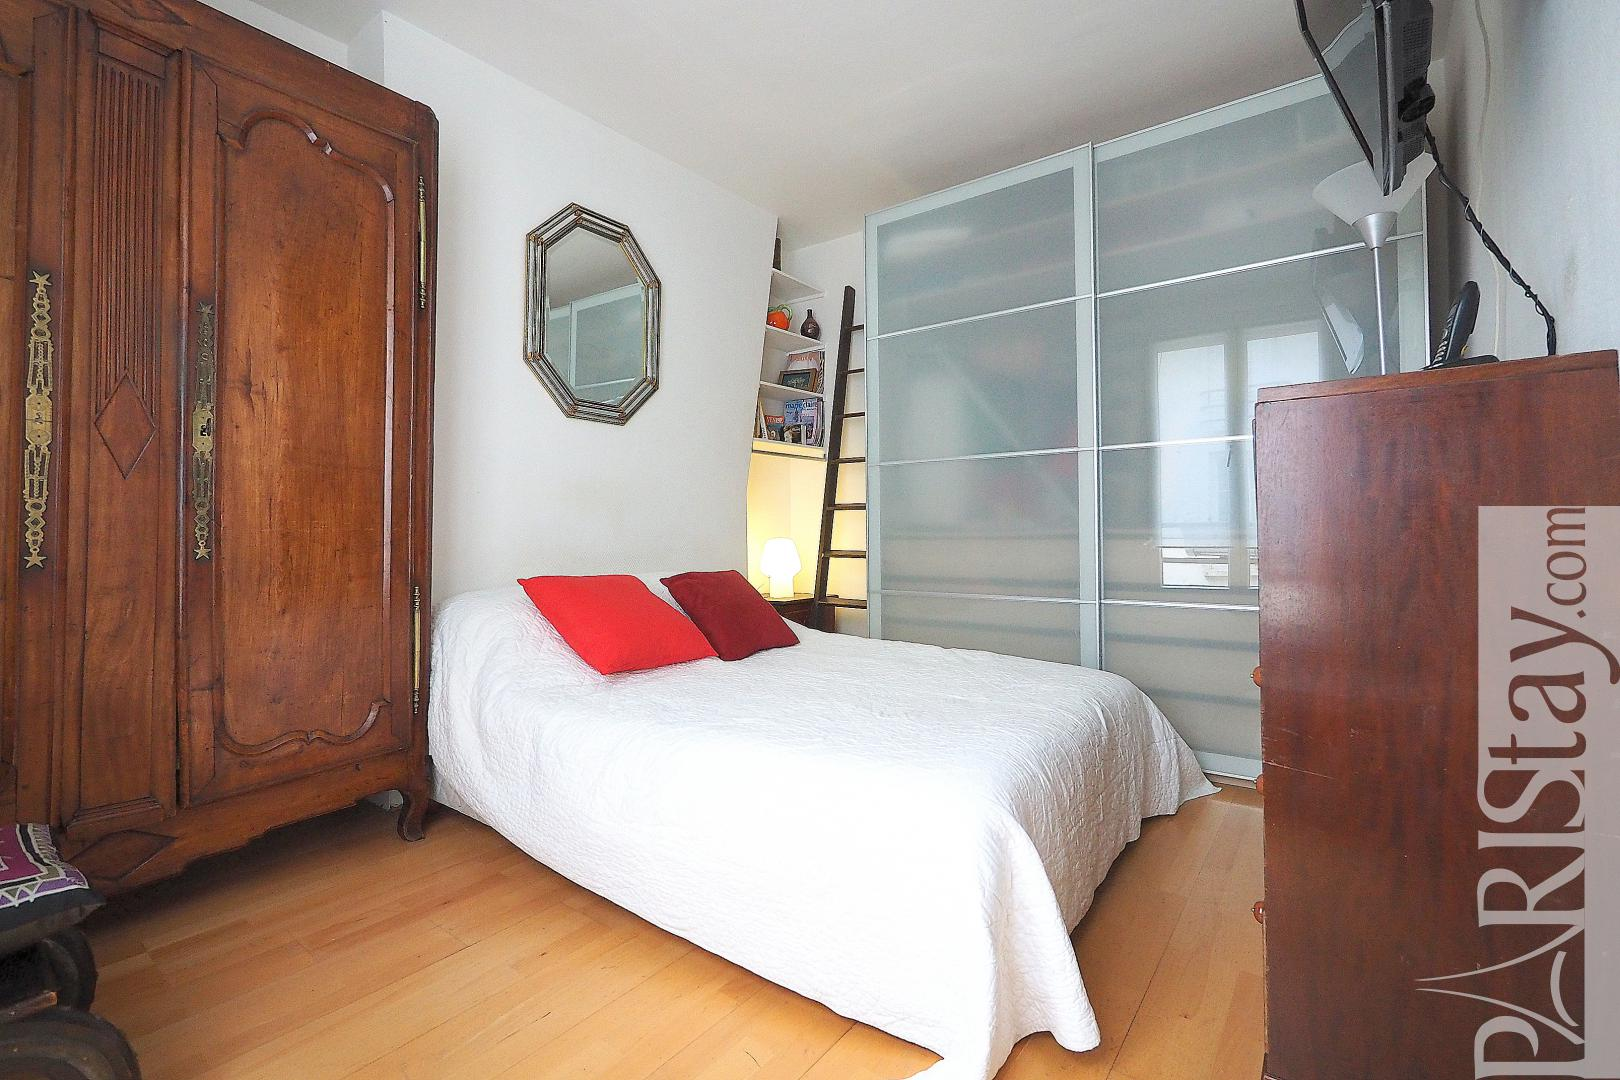 Affordable 1 bedroom apartment for rent Parc Monceau 75017 ...